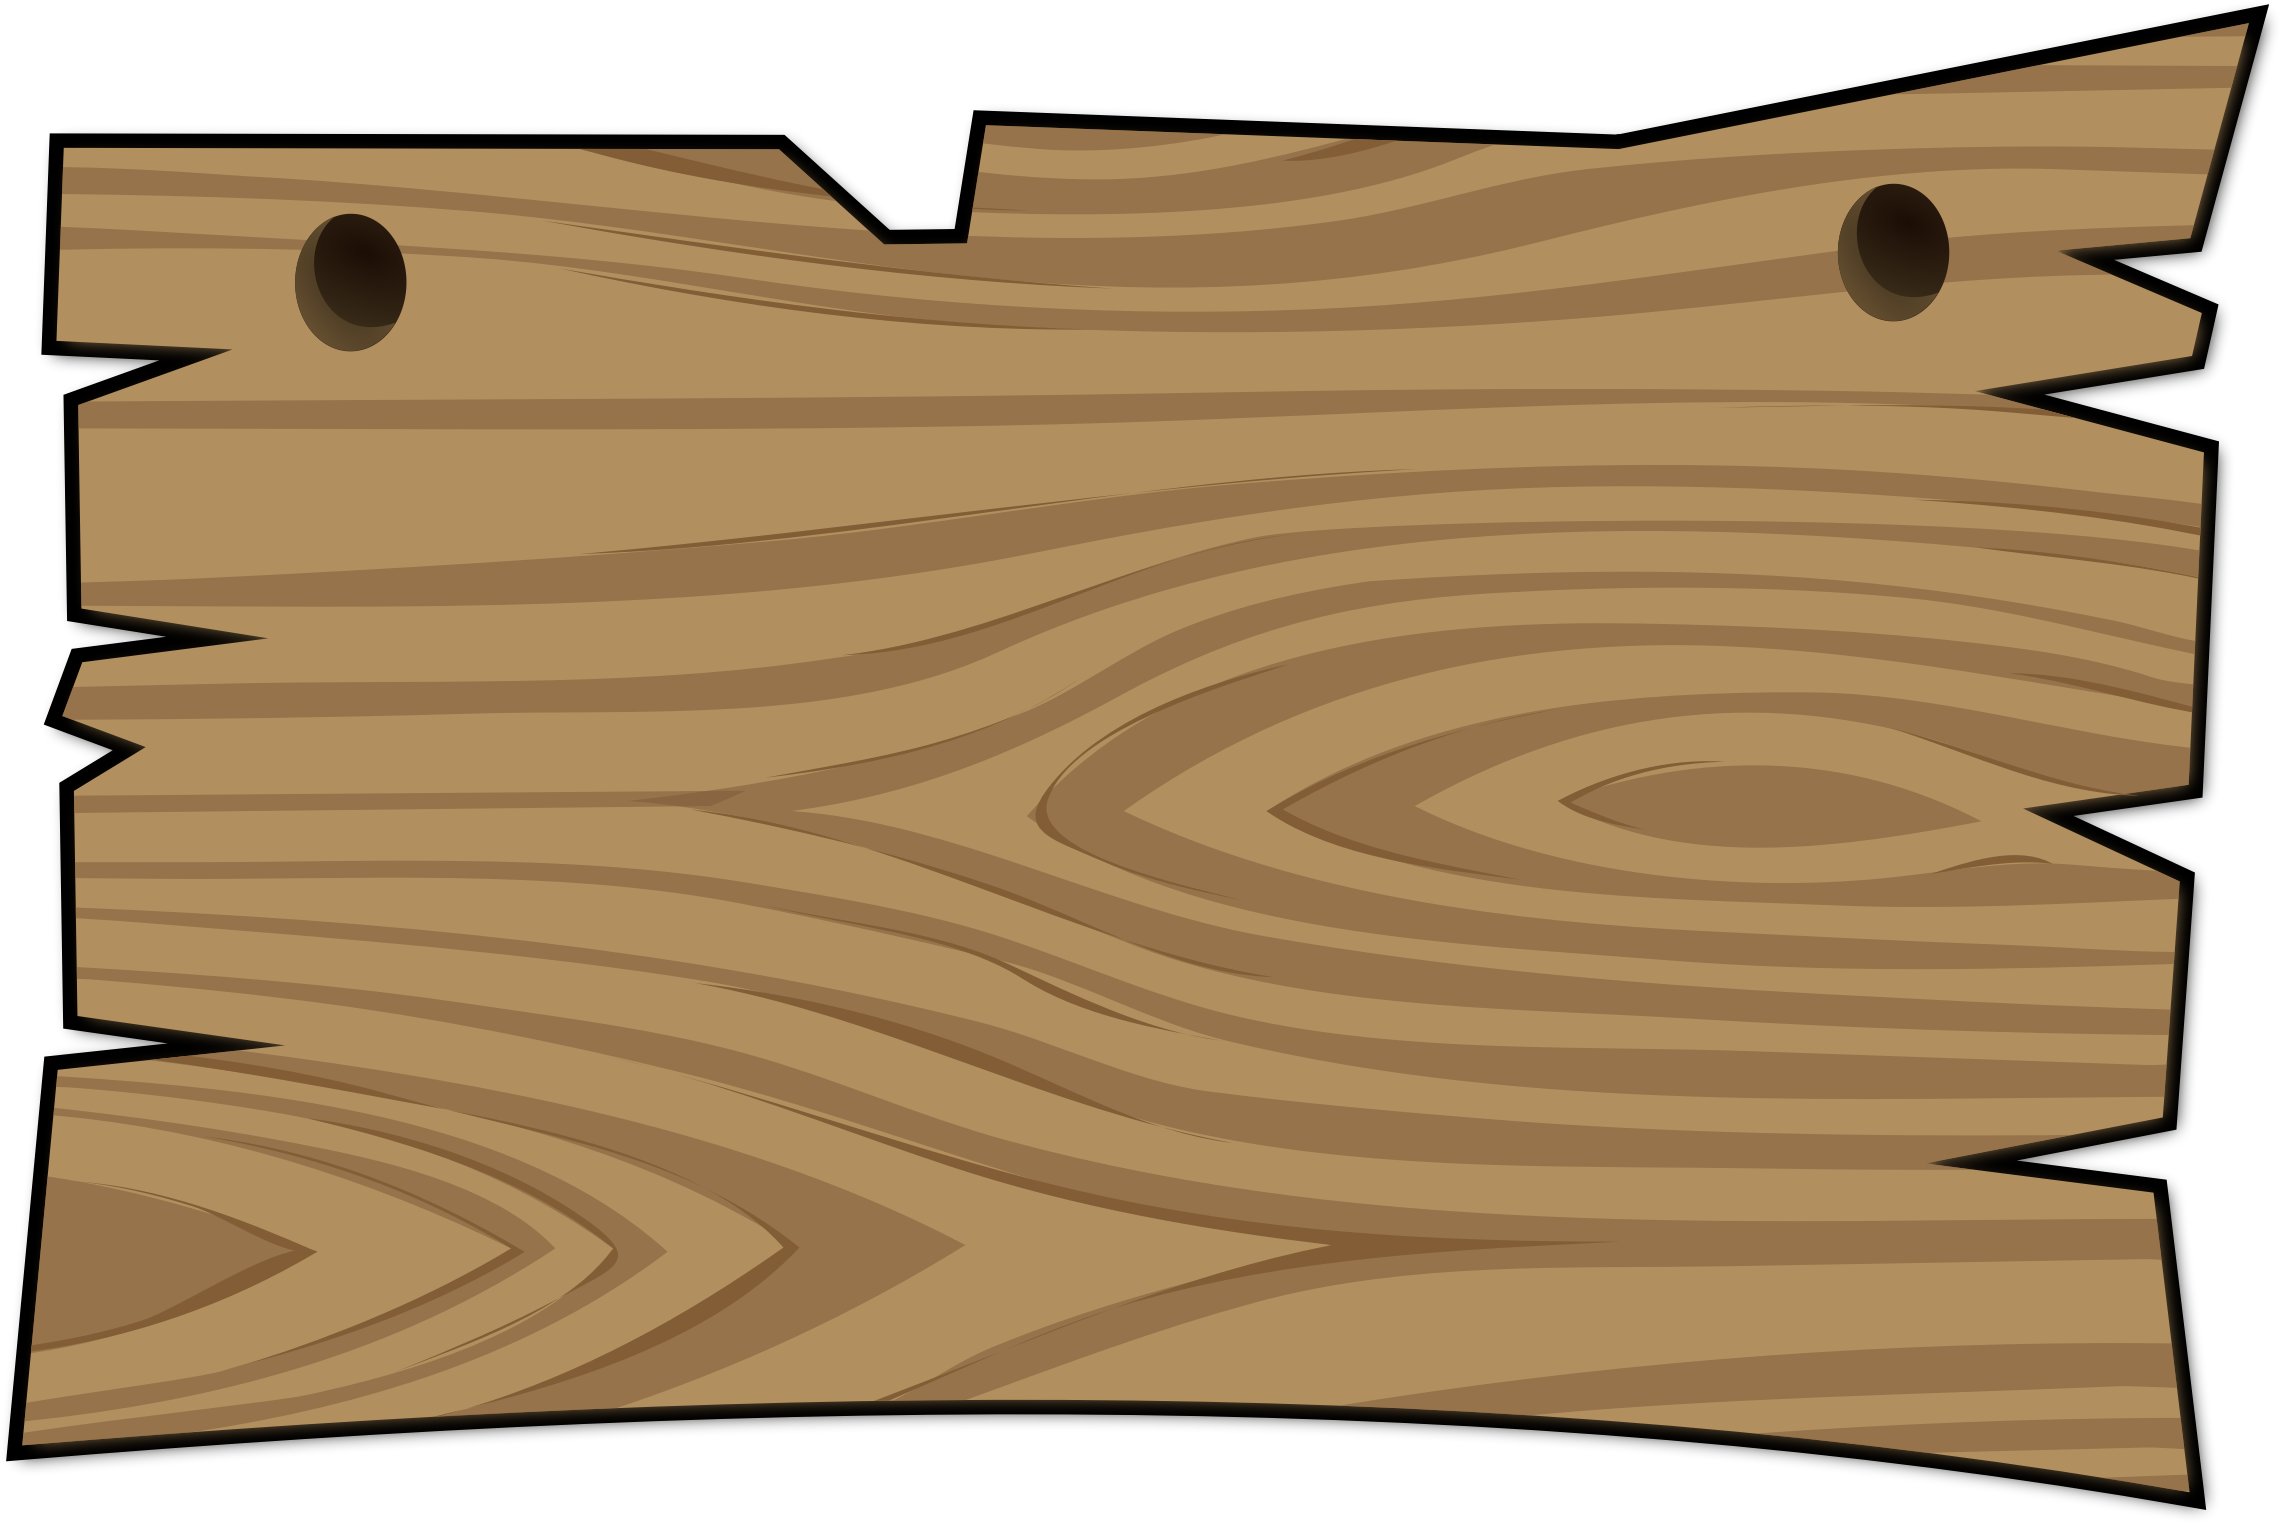 Wood board clipart